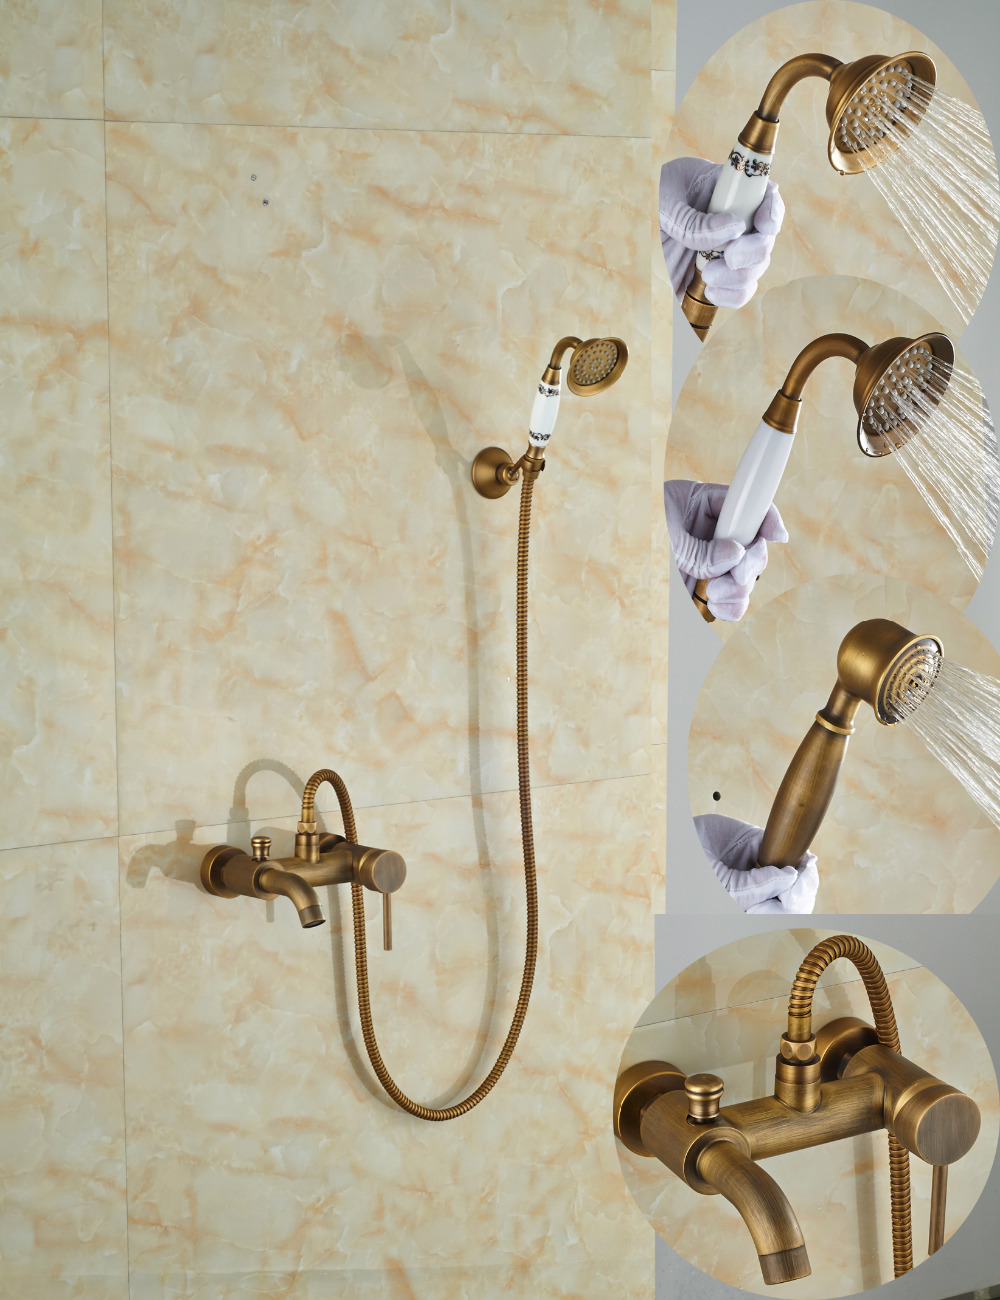 Wholesale And Retail Promotion Wall Mounted Bathroom Tub Faucet Spout W/ Hand Shower Sprayer Antique Brass Shower Mixer Tap wholesale and retail wall mounted thermostatic valve mixer tap shower faucet 8 sprayer hand shower